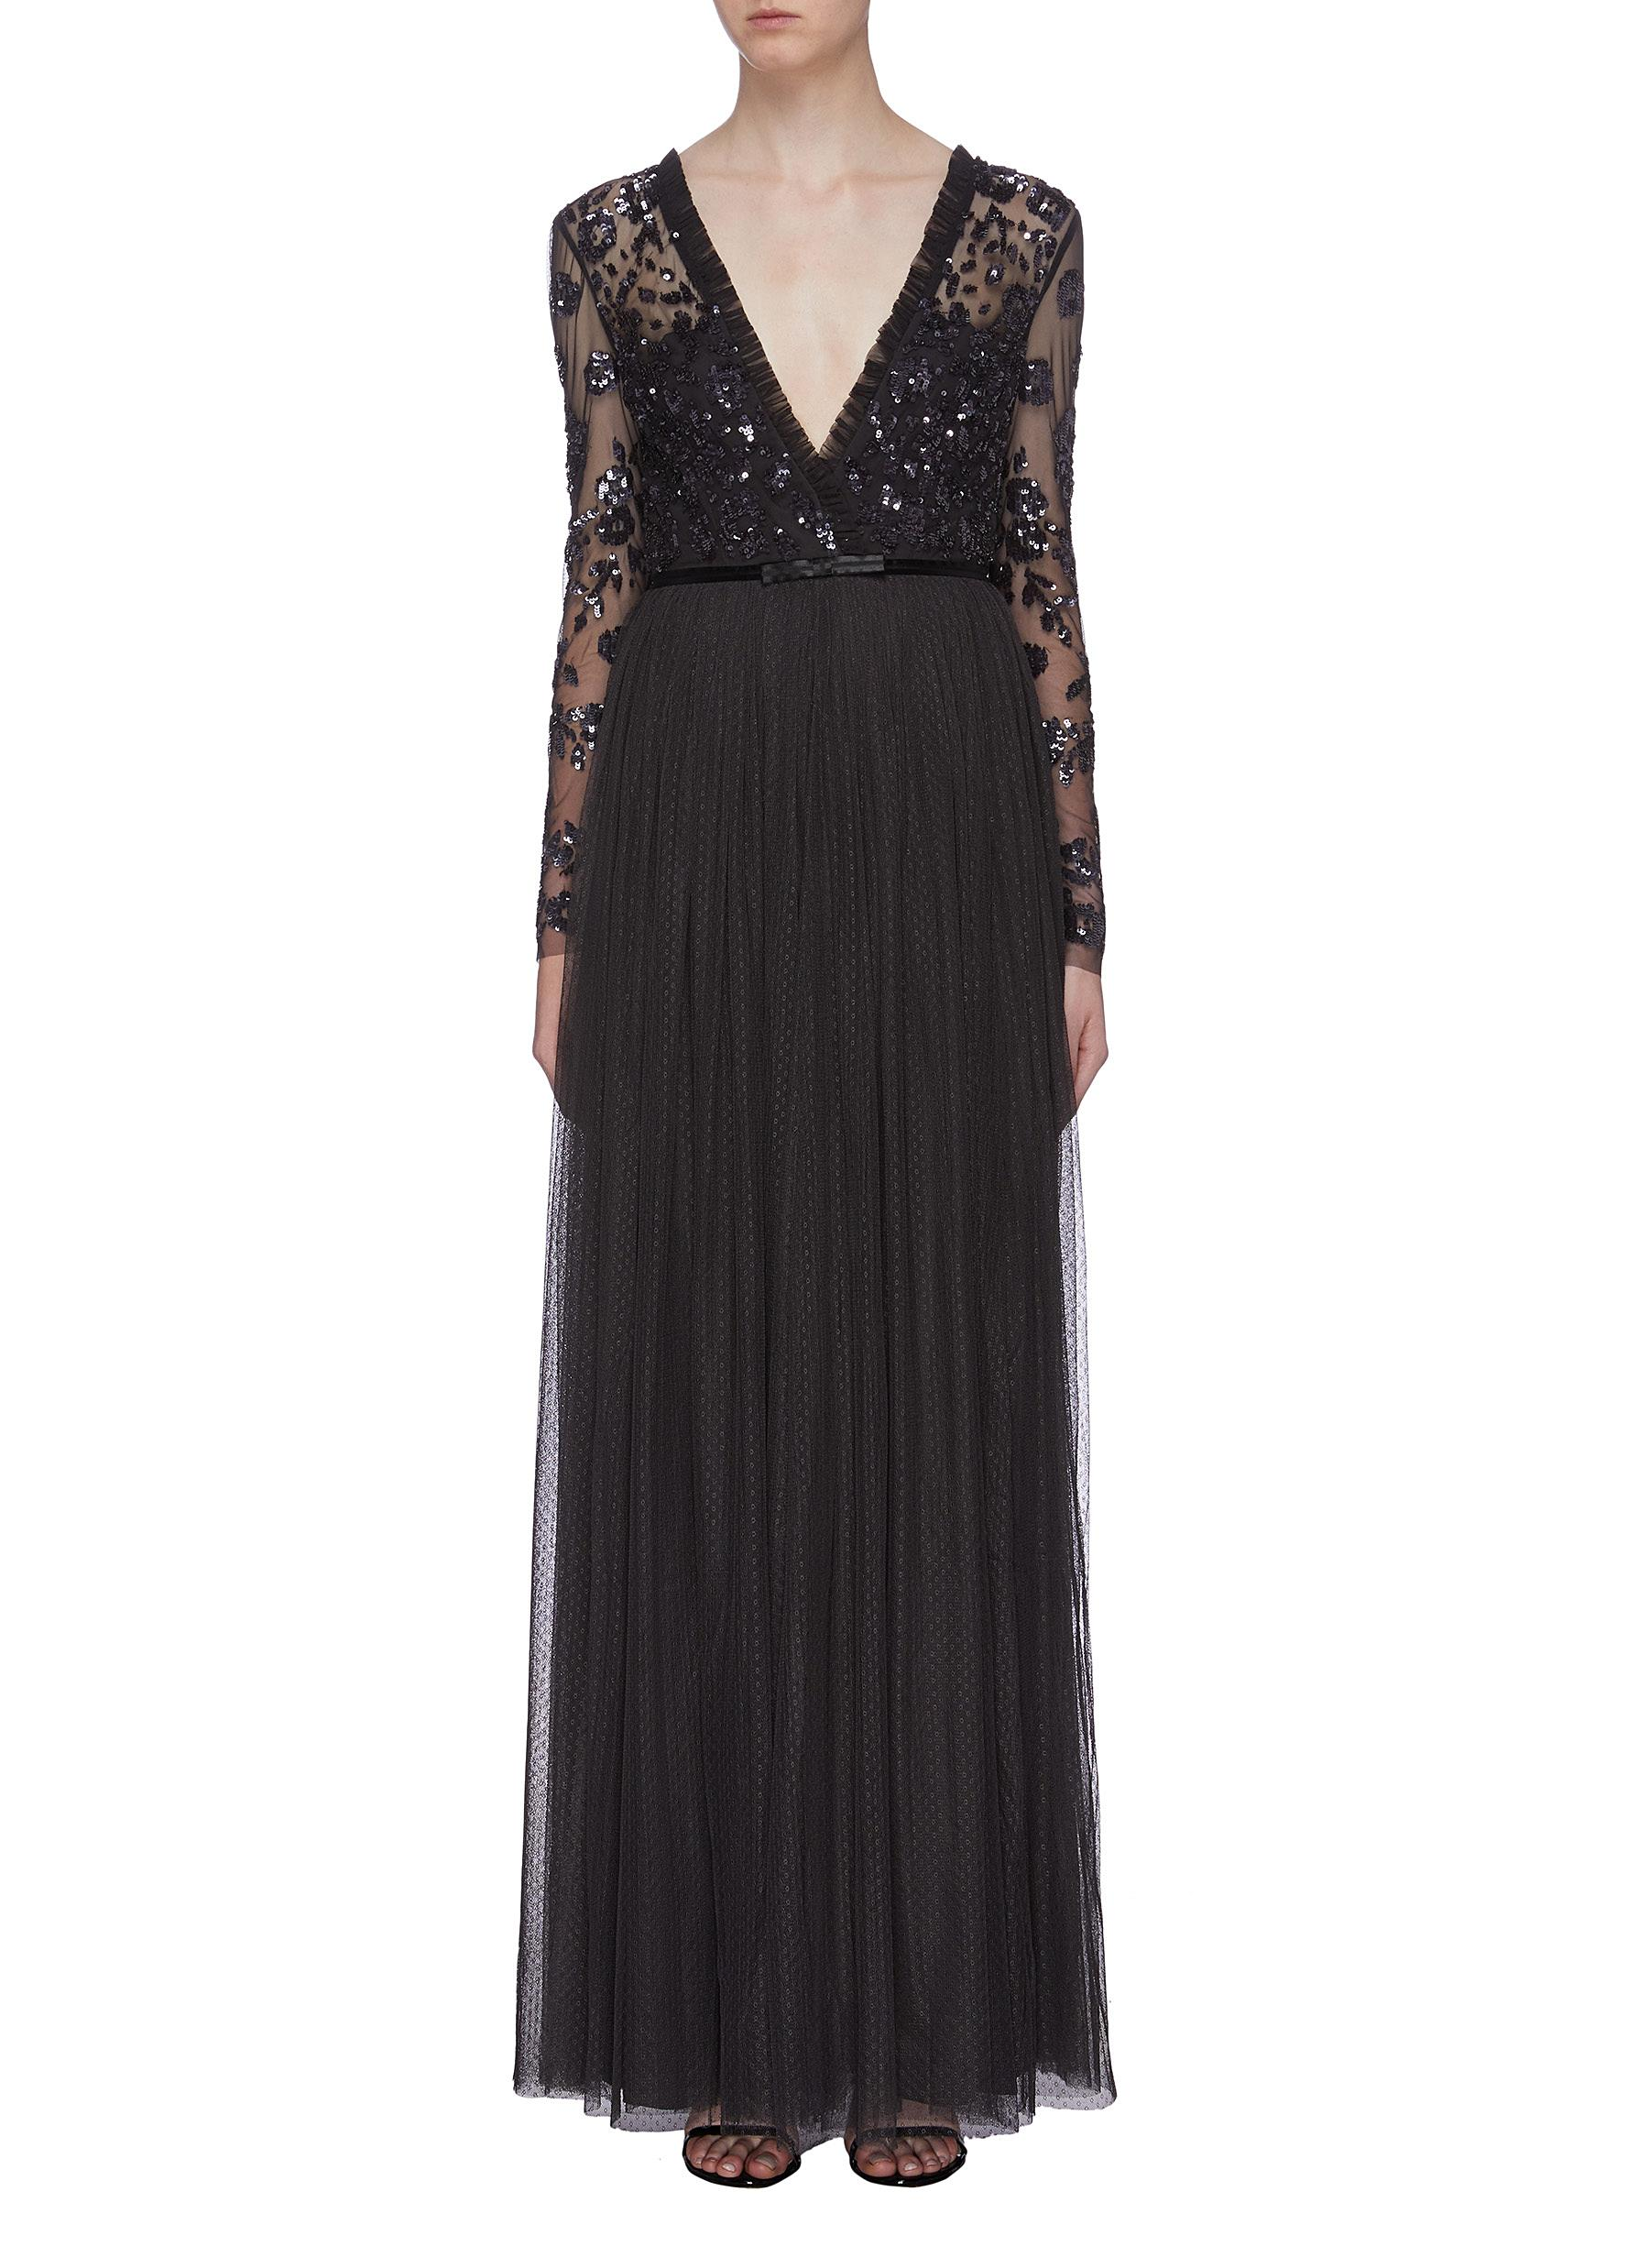 Ava sequin floral mock wrap tulle maxi dress by Needle & Thread